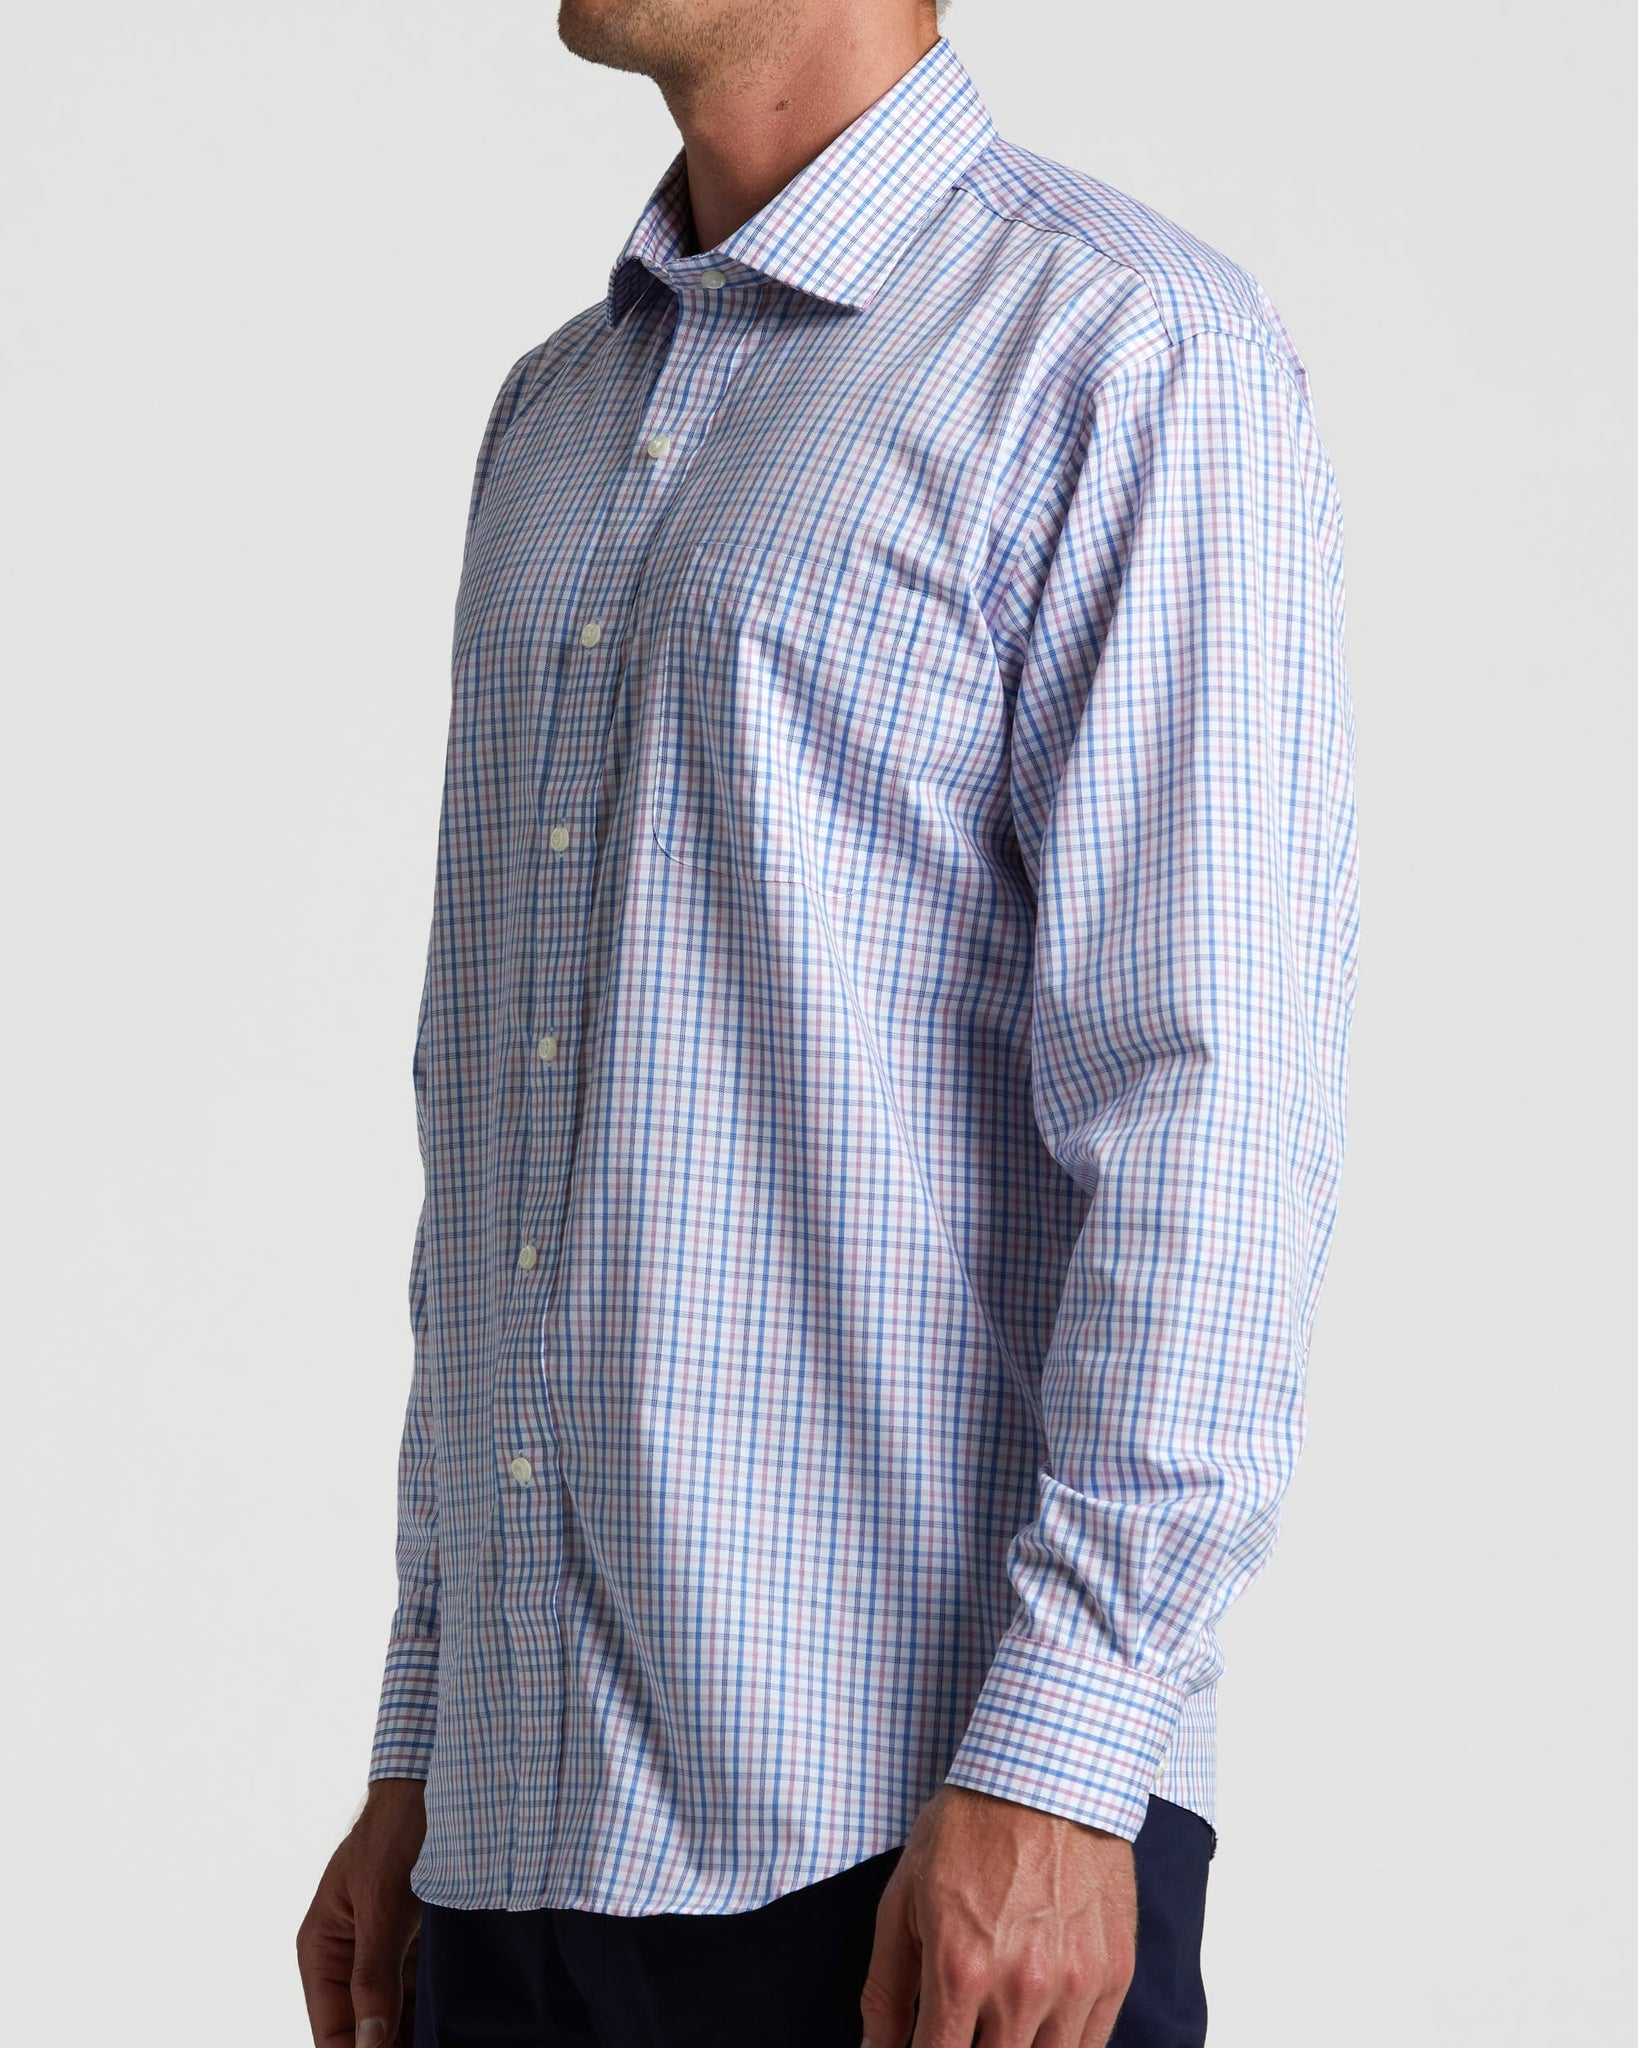 https://cdn.shopify.com/s/files/1/0249/6141/7252/files/Magna_Ready_-_Mens_-_Dress_Shirt_-_Pink_Blue_Check-fade.mp4?4372